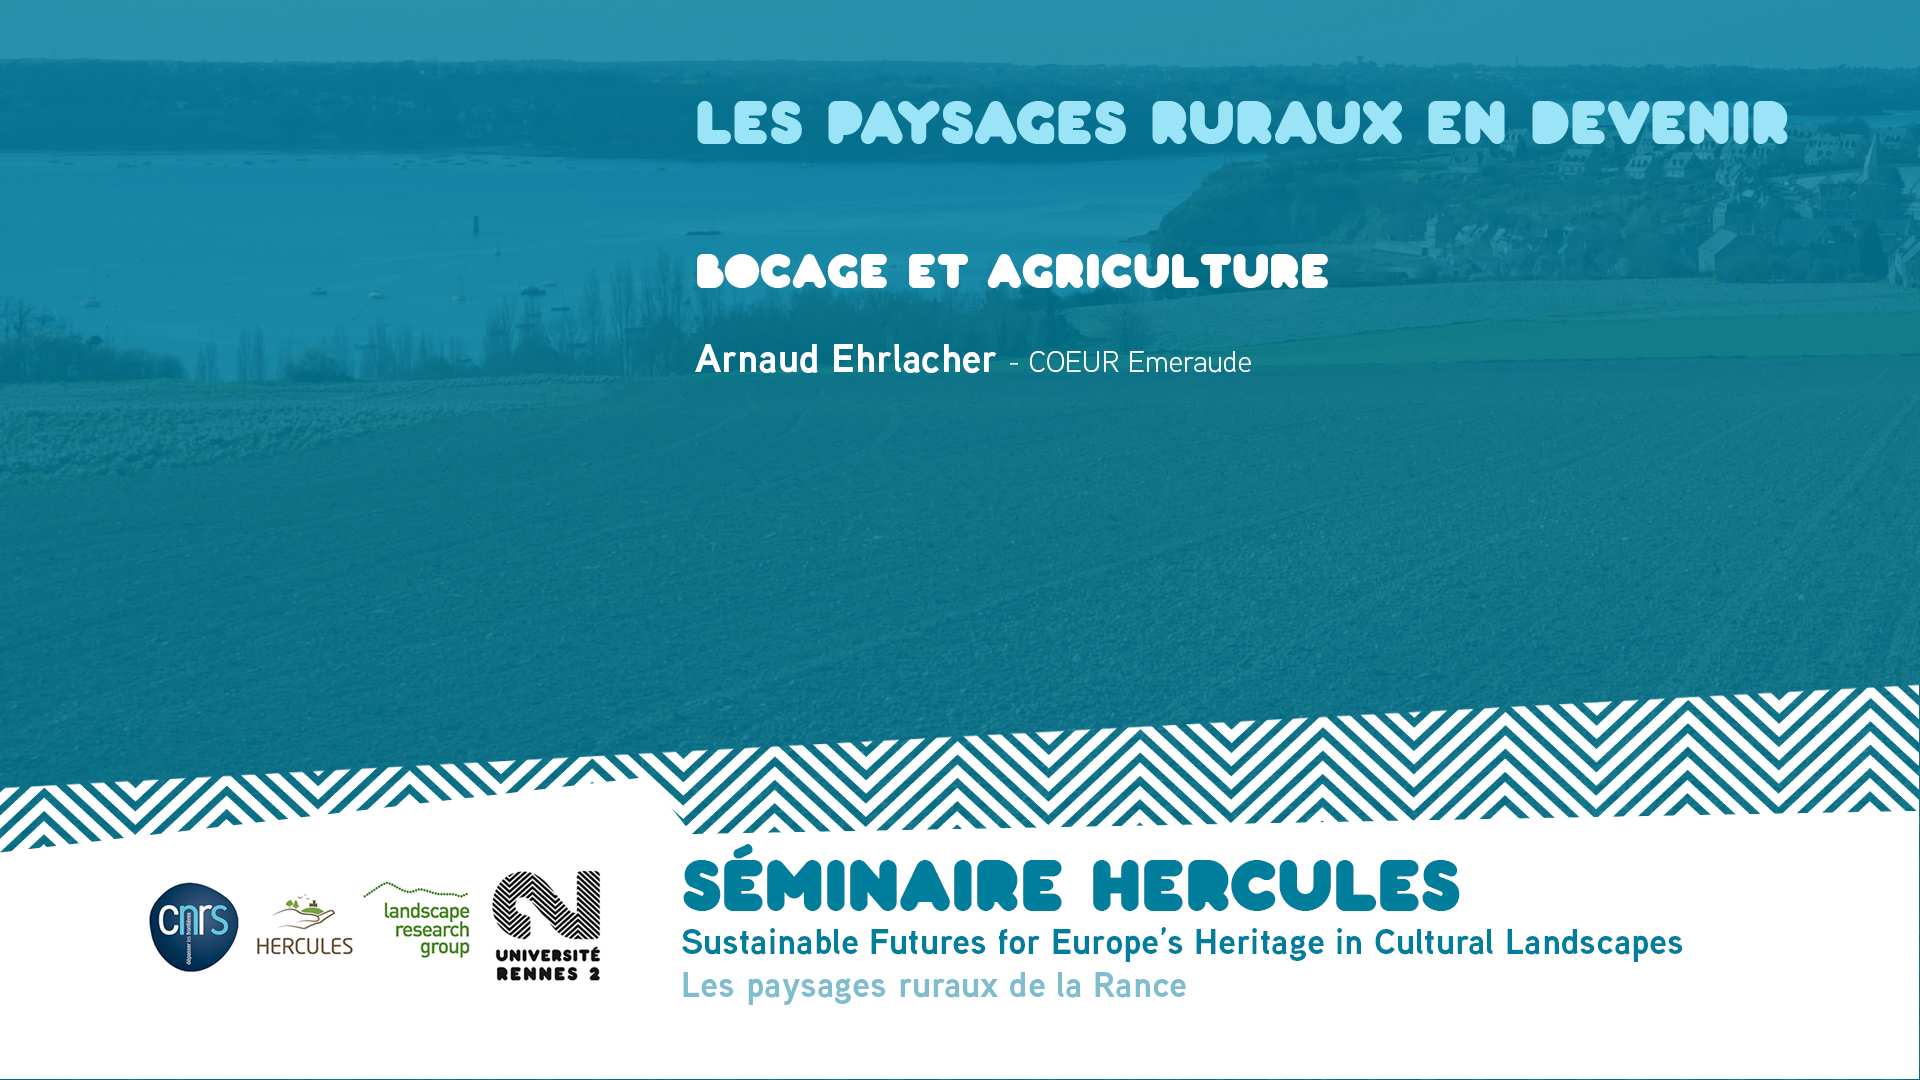 Les paysages ruraux en devenir – Bocage et agriculture - Sustainable Futures for Europe's Heritage in Cultural Landscapes